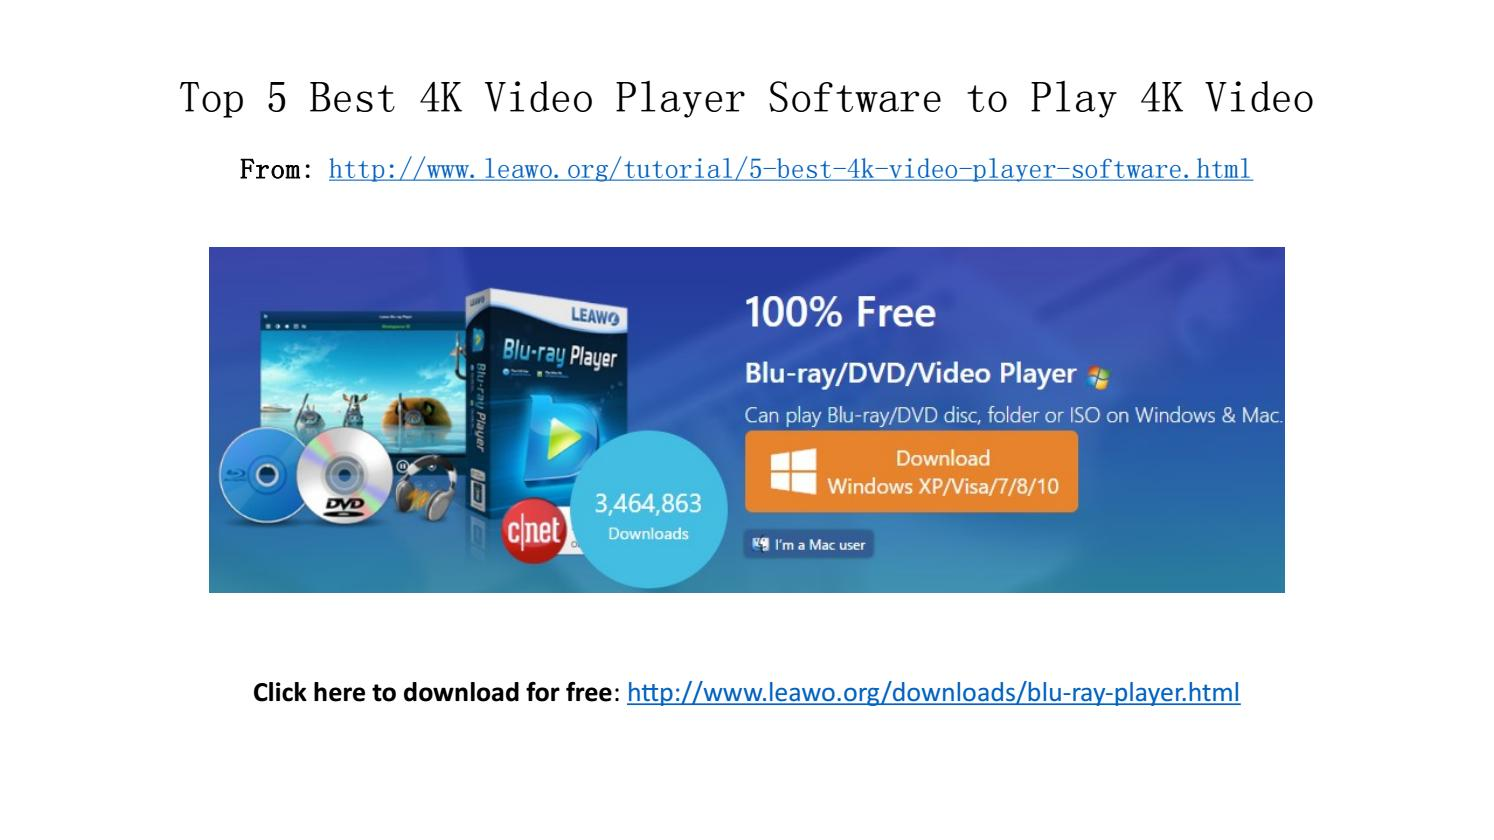 4k video player for windows 10 free download